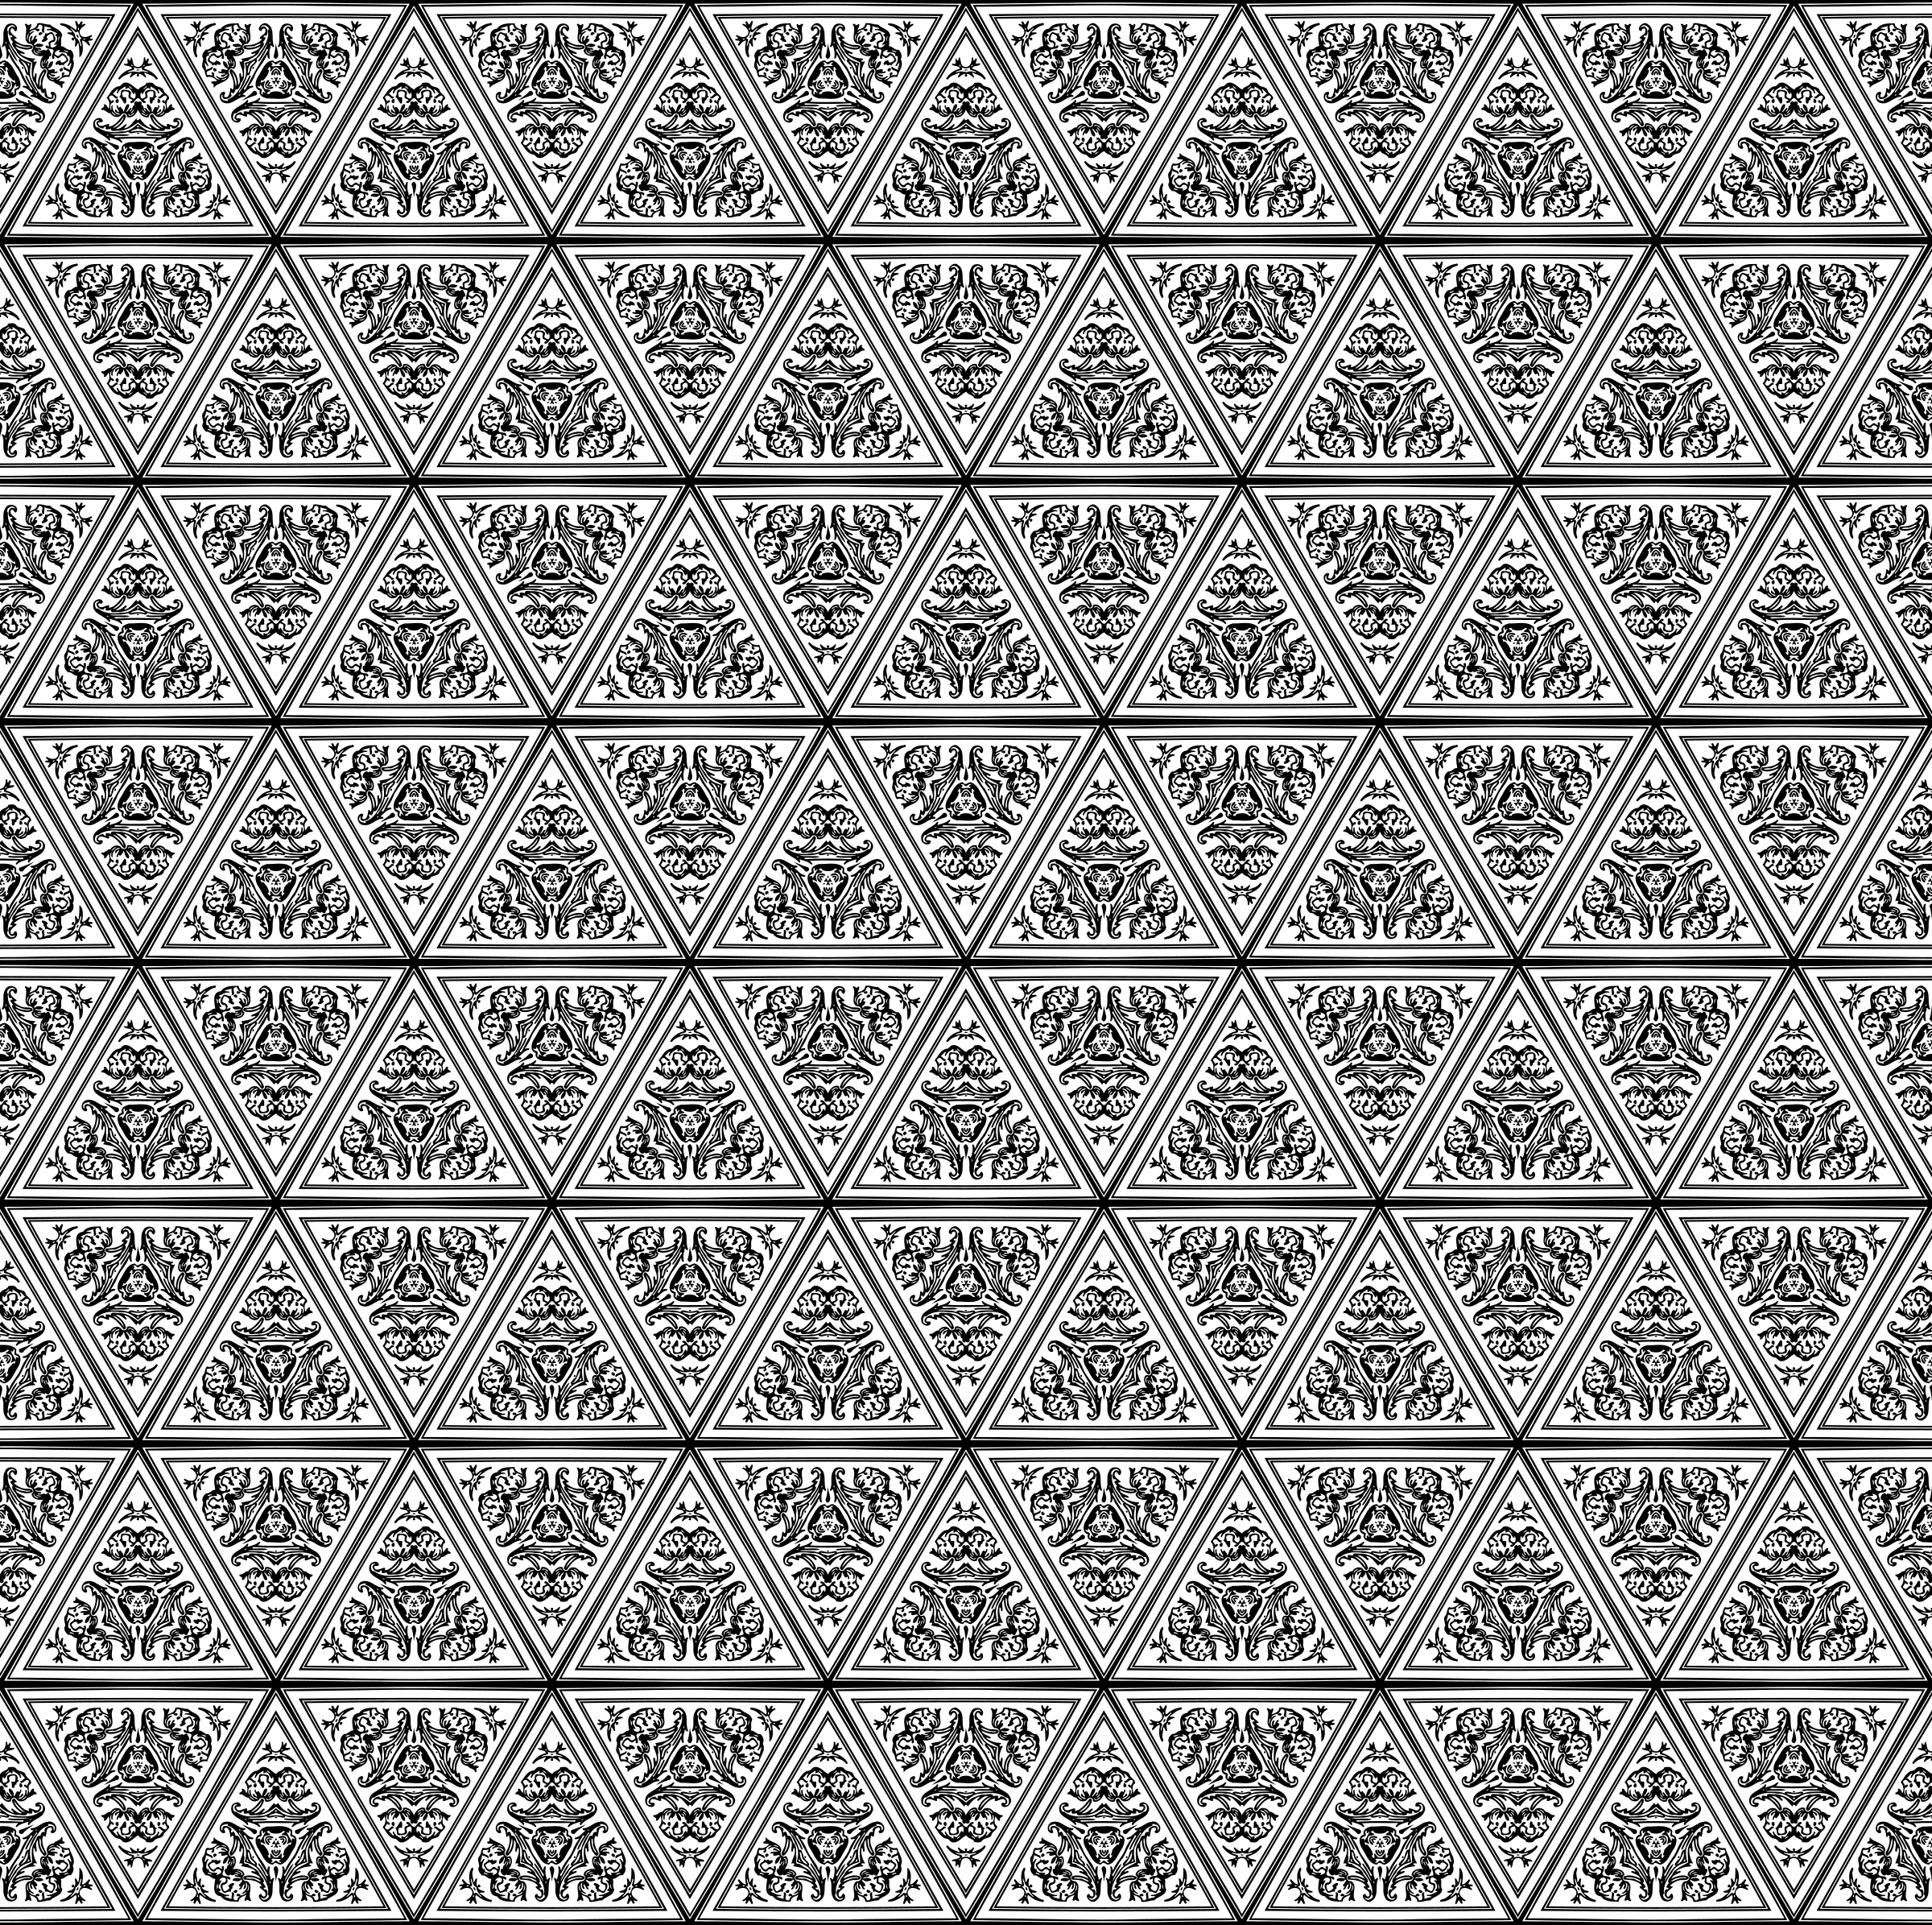 Background pattern 109 (black and white) by Firkin